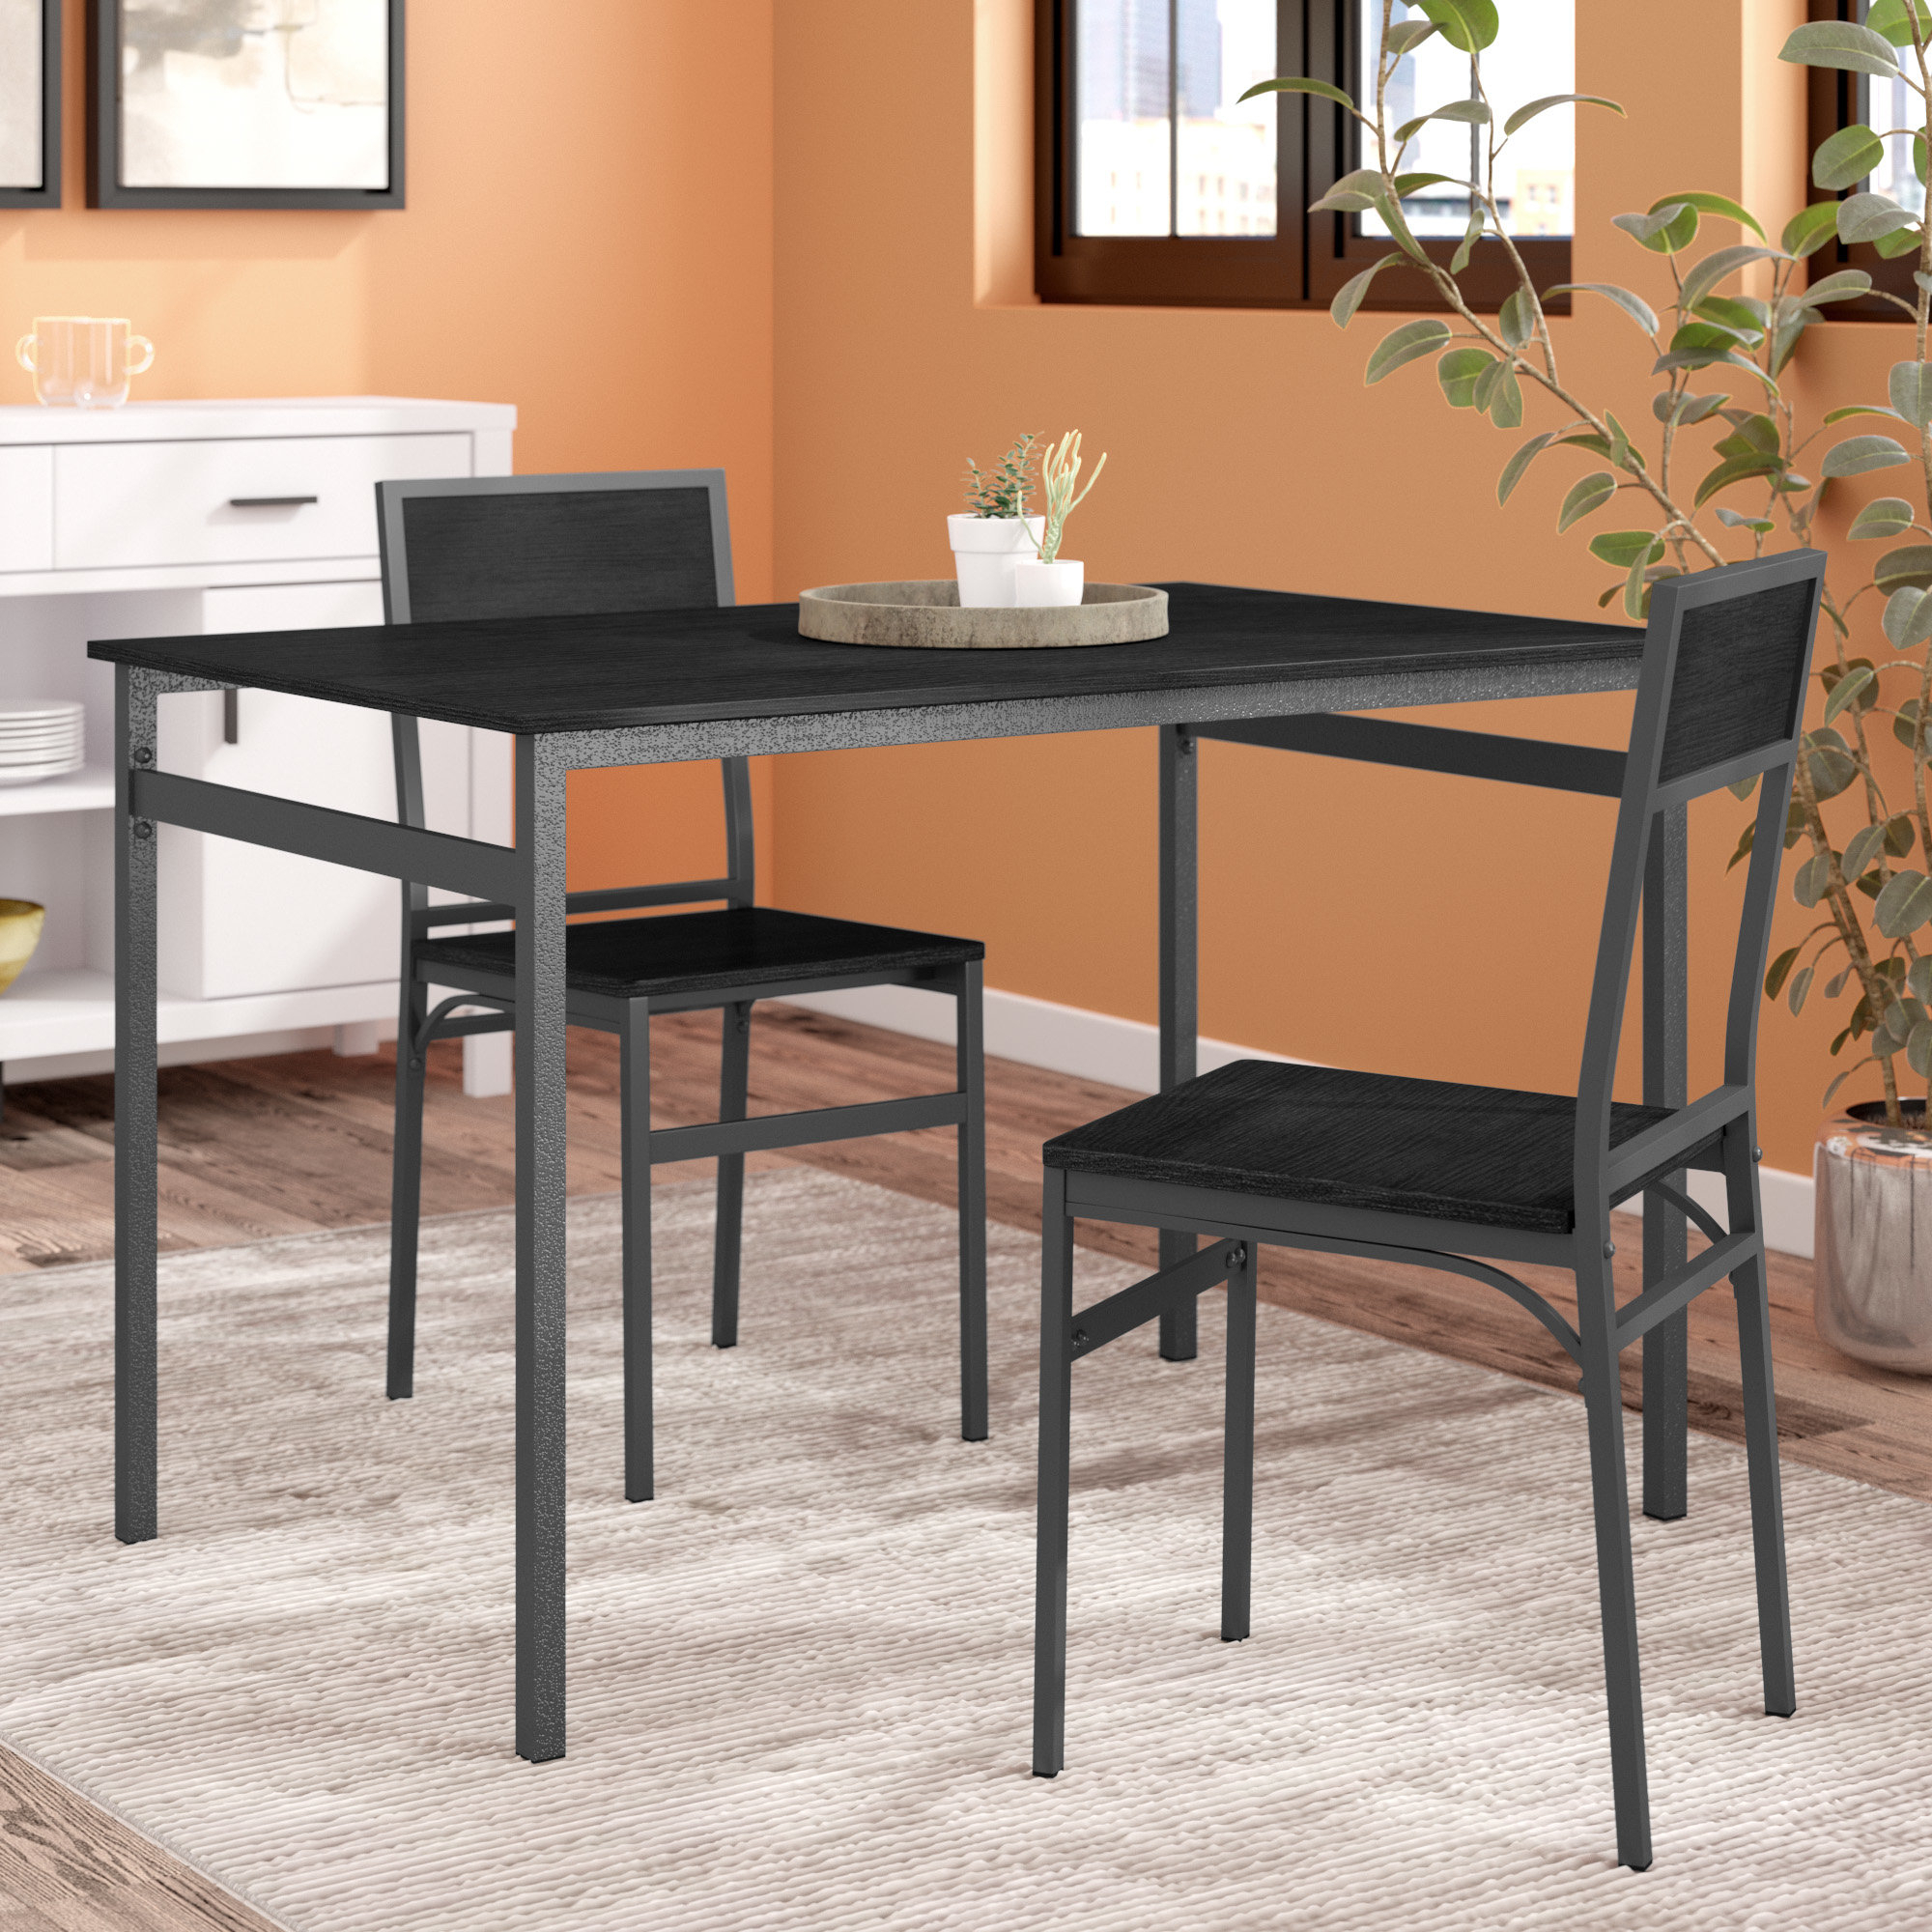 Mizpah 3 Piece Counter Height Dining Sets Inside Well Liked Latitude Run Springfield 3 Piece Dining Set & Reviews (View 6 of 25)